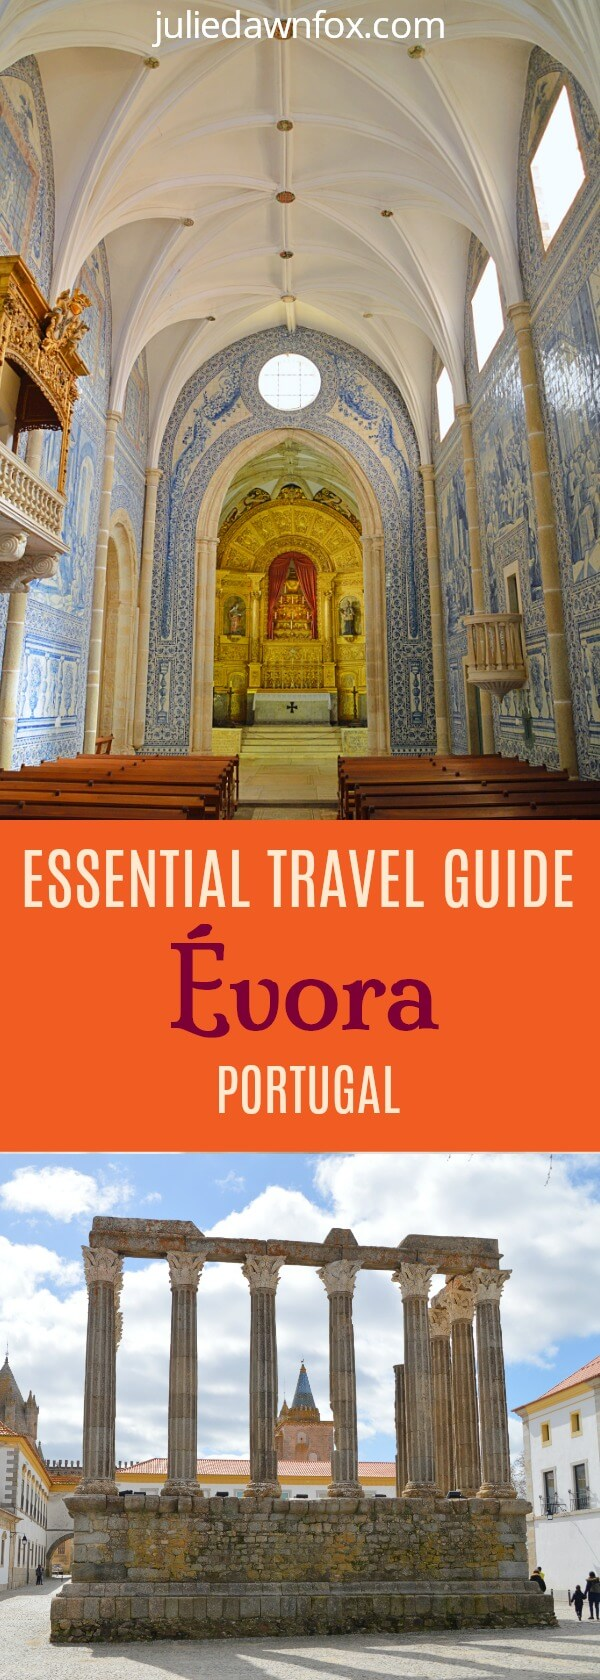 Evora travel guide. Sights, restaurants, hotels, practical tips